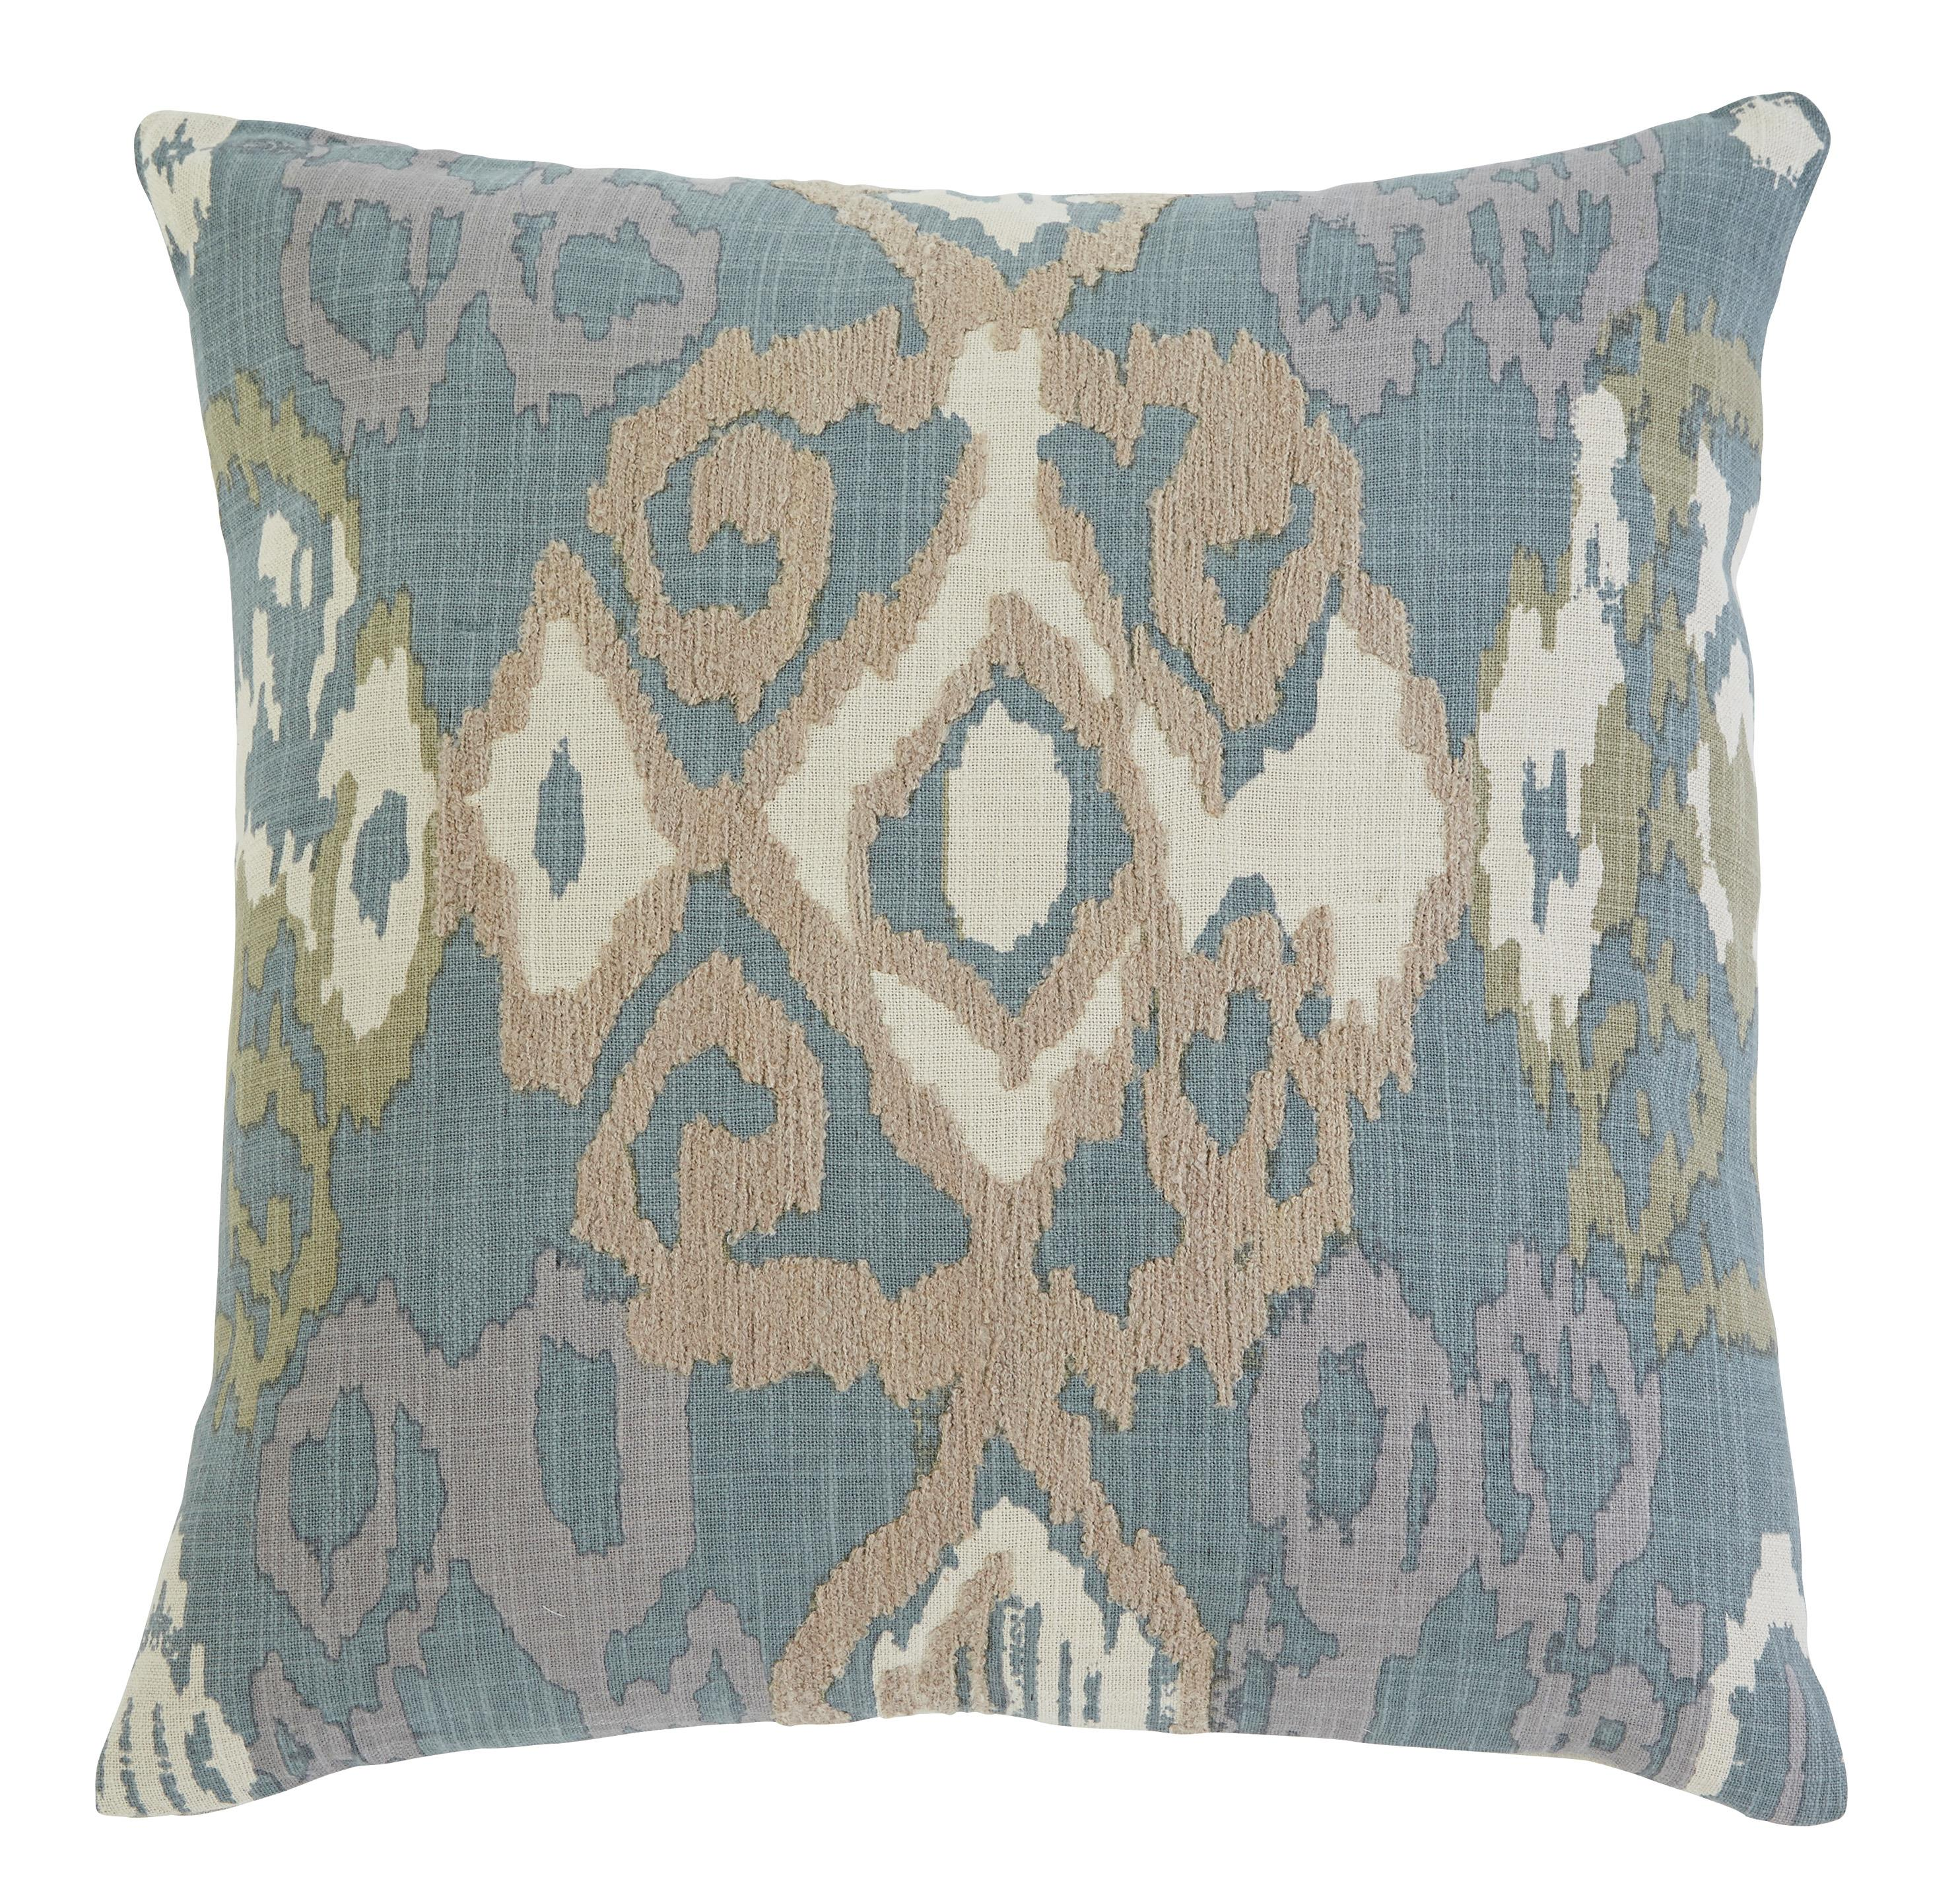 Signature Design by Ashley Pillows Patterned - Blue Pillow Cover - Item Number: A1000377P